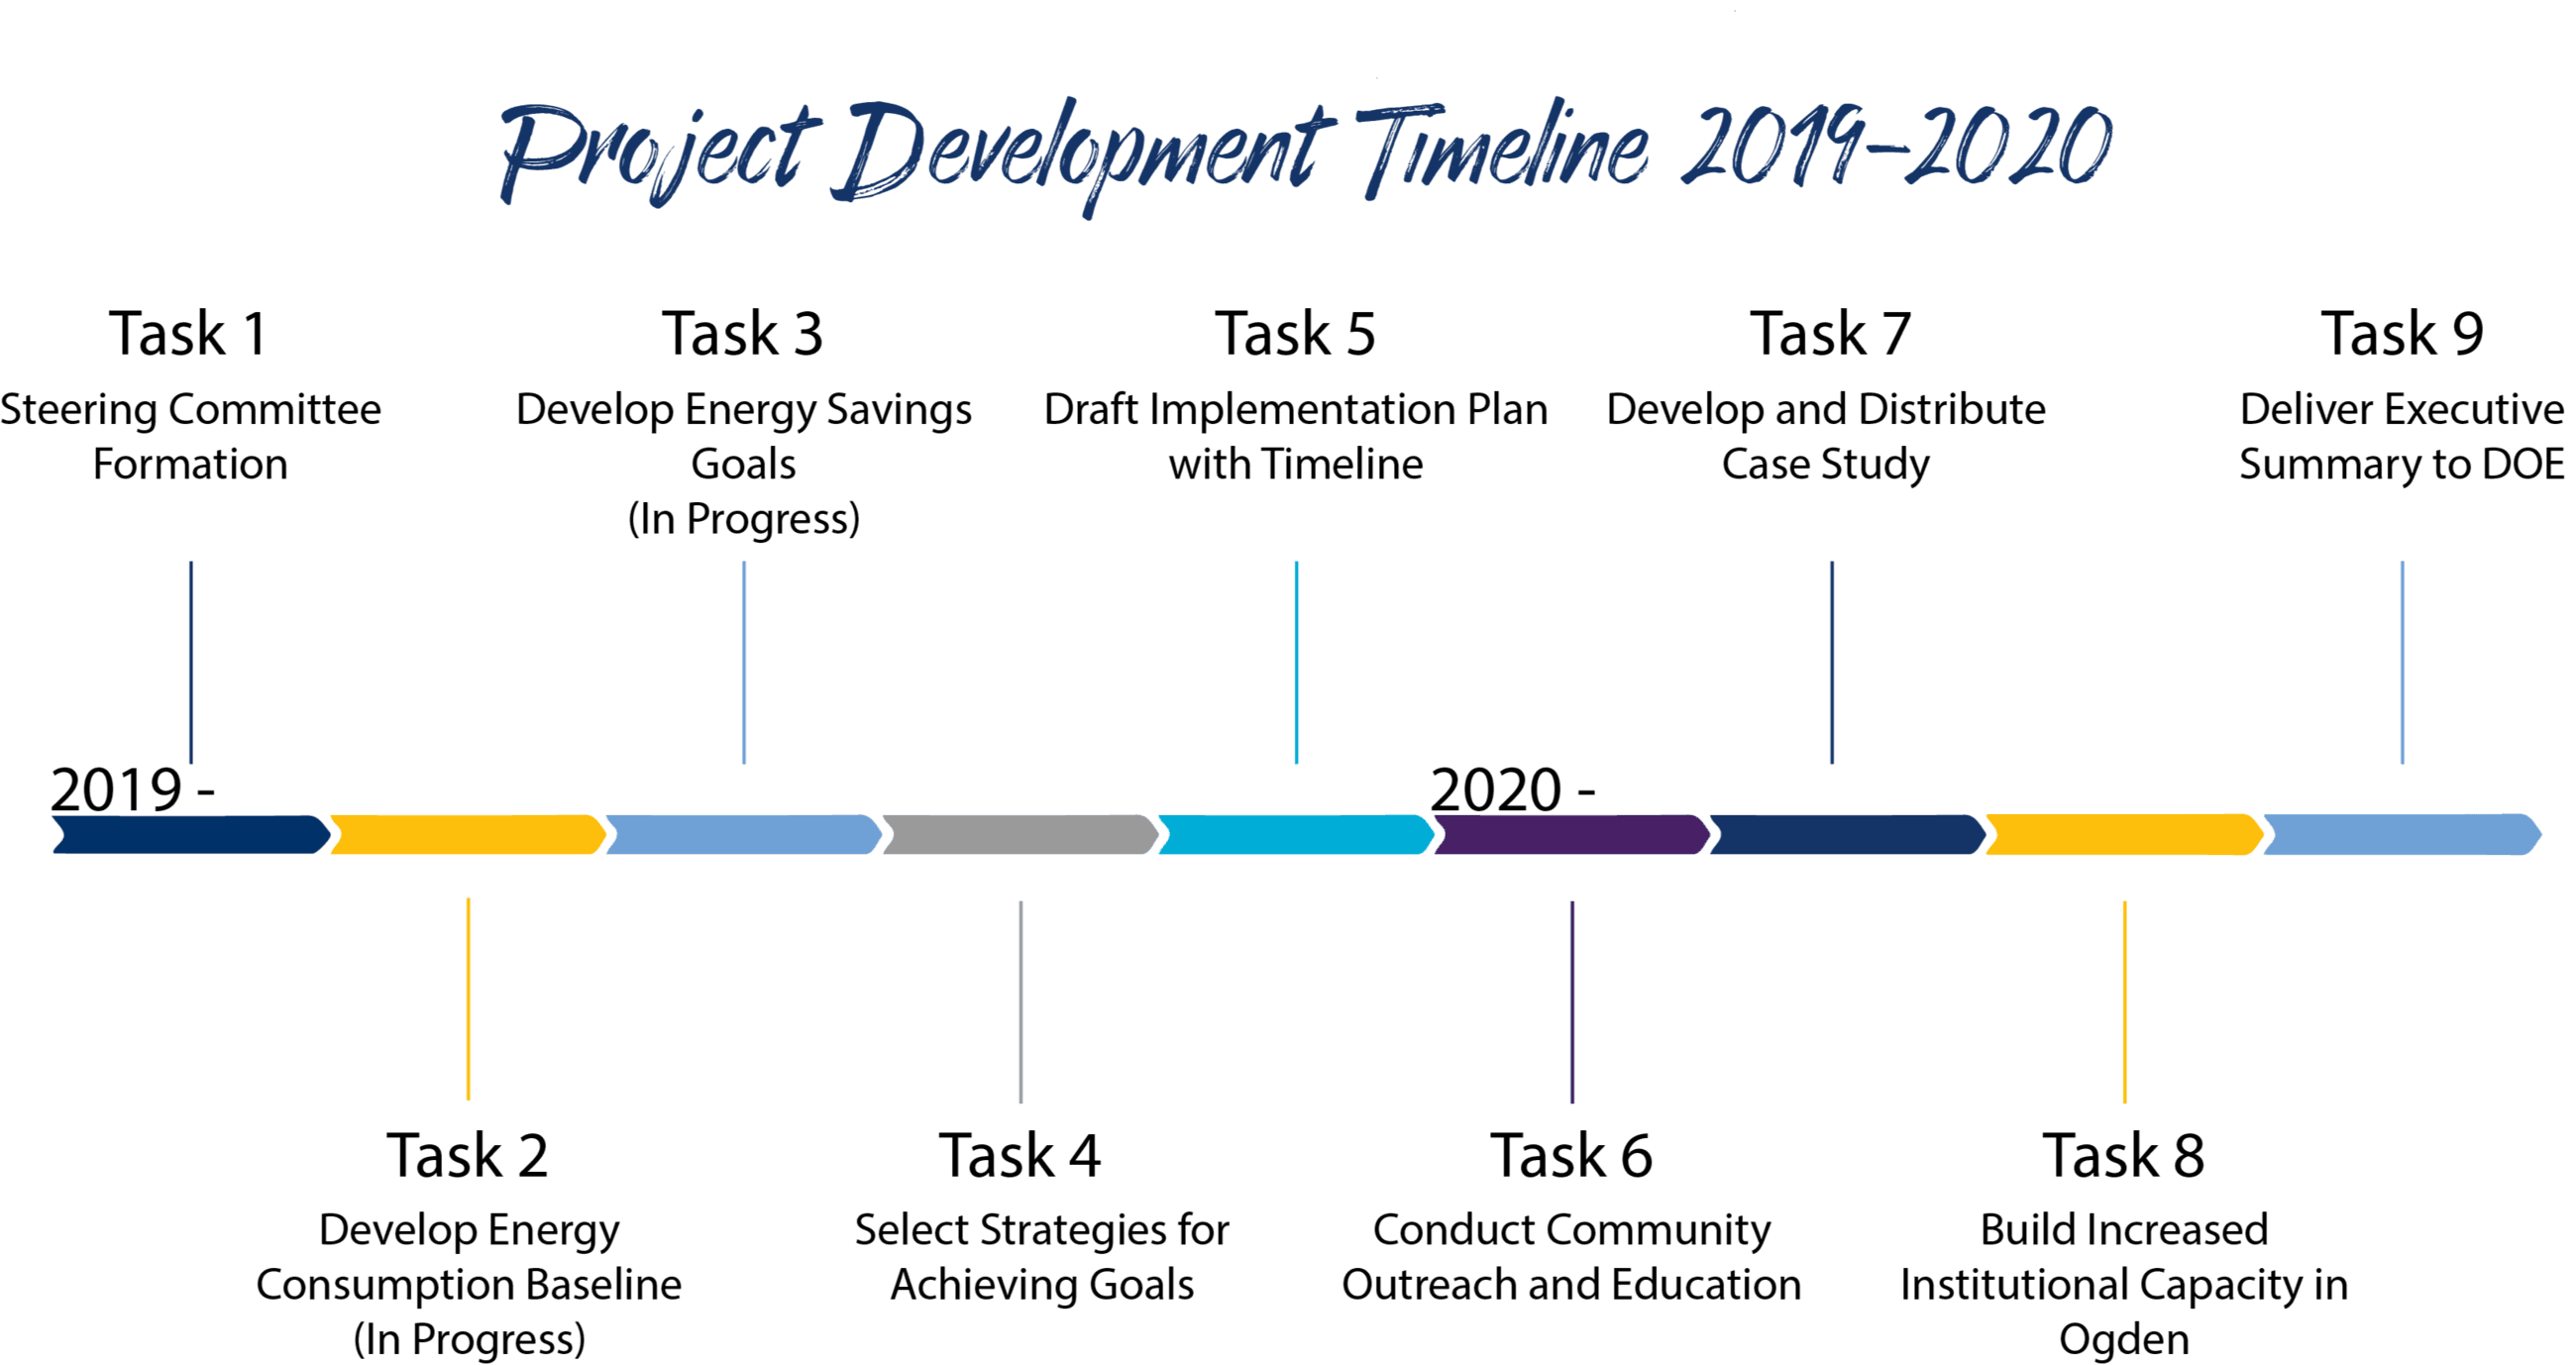 Energy Wise Ogden Program Timeline